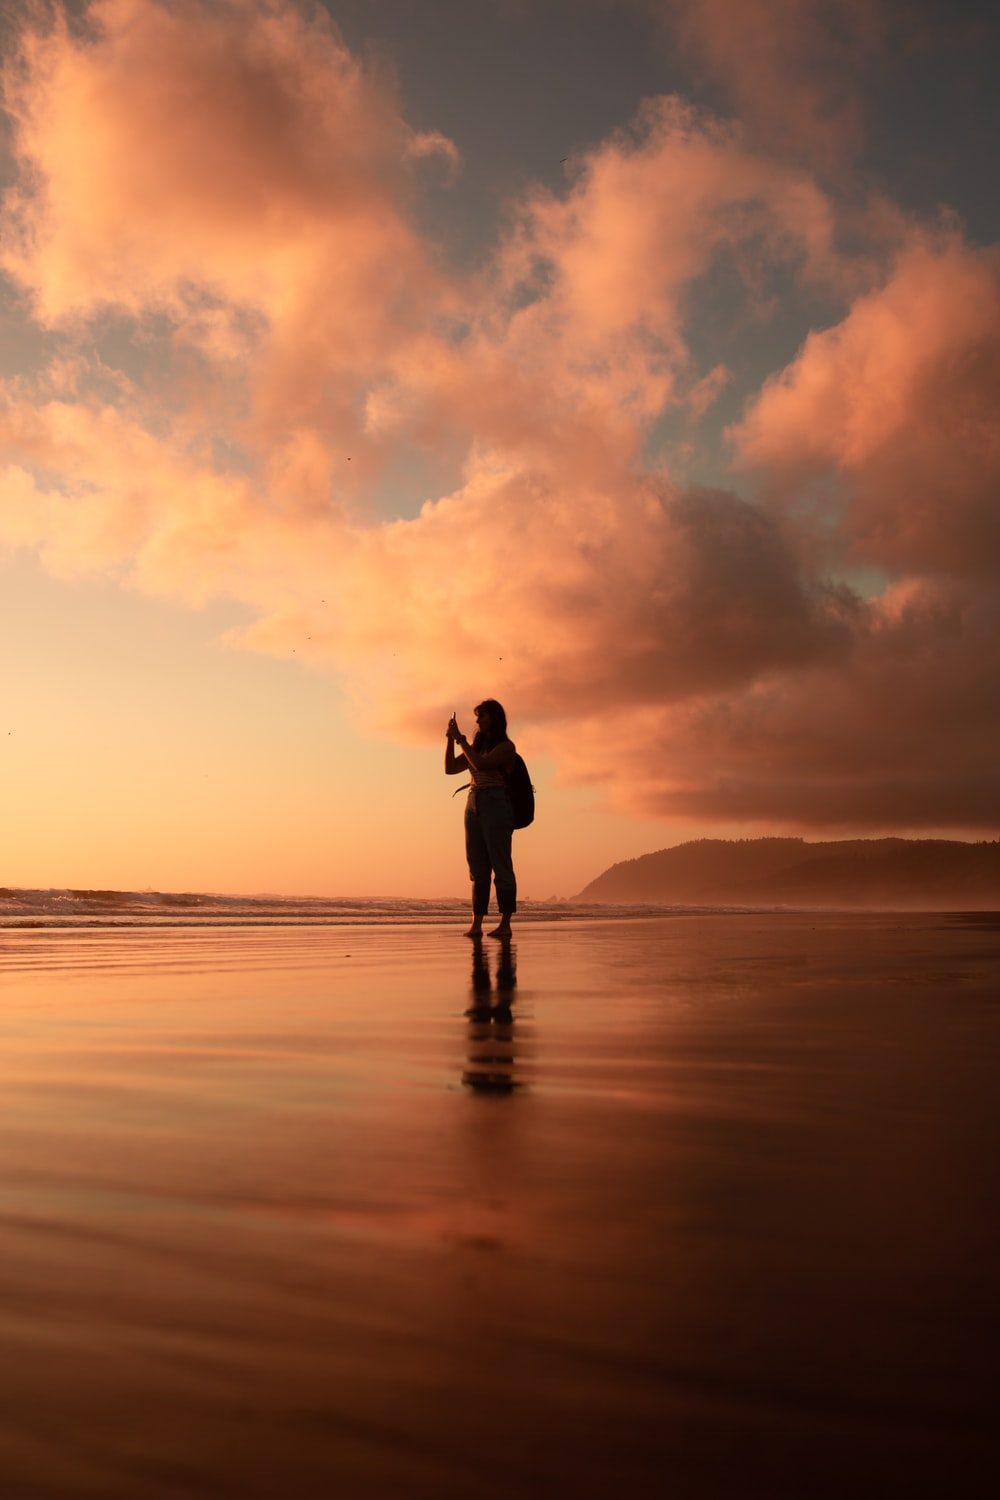 silhouette of woman standing on seashore in golden hour background